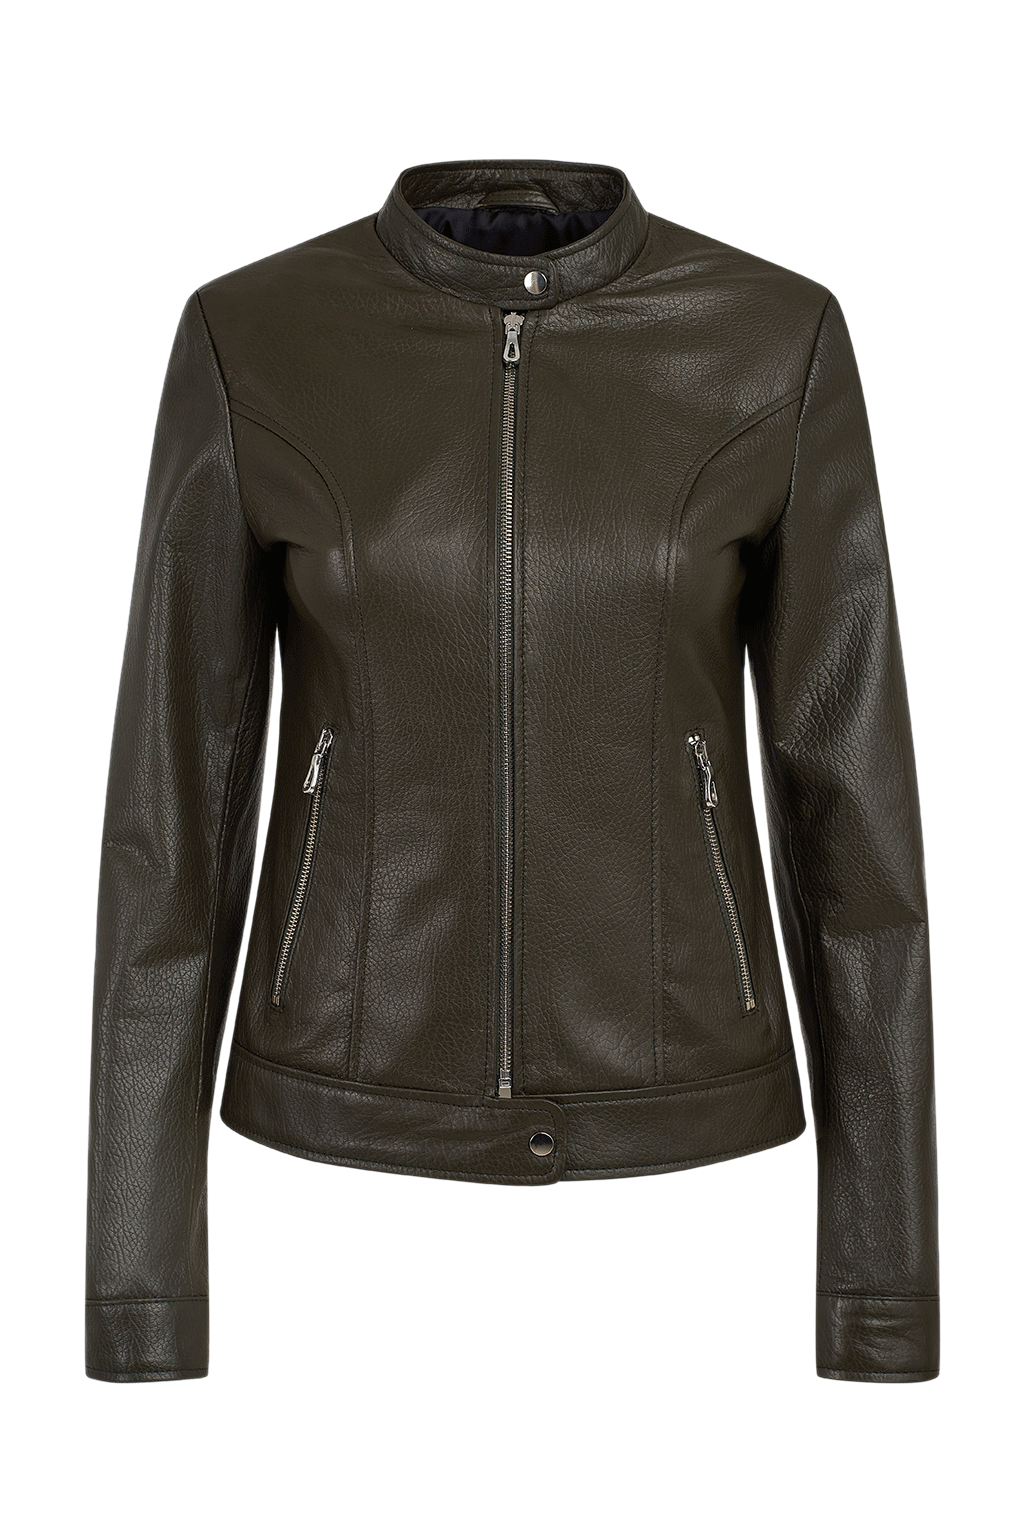 Women's Classic Leather Jacket - Olive Green